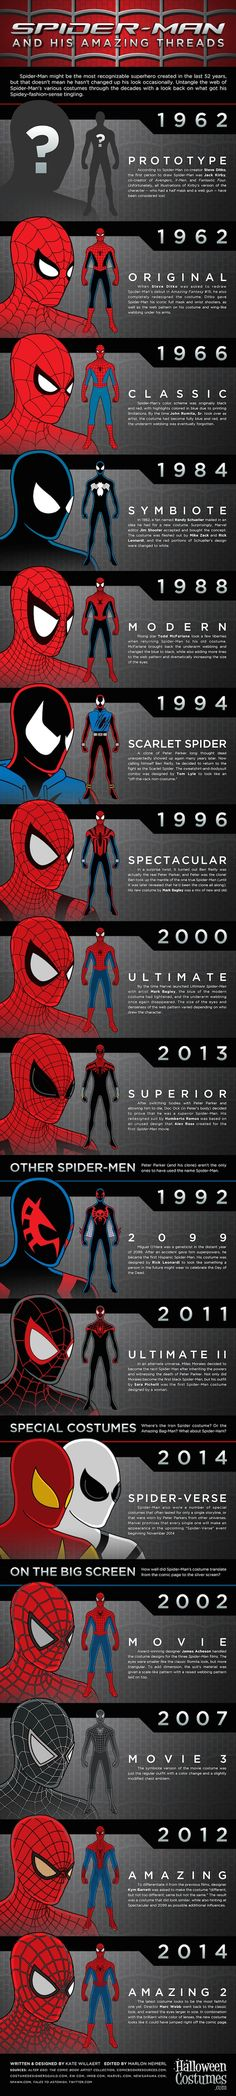 See The Evolution Of Spider-Man's Costume In One Great Infographic